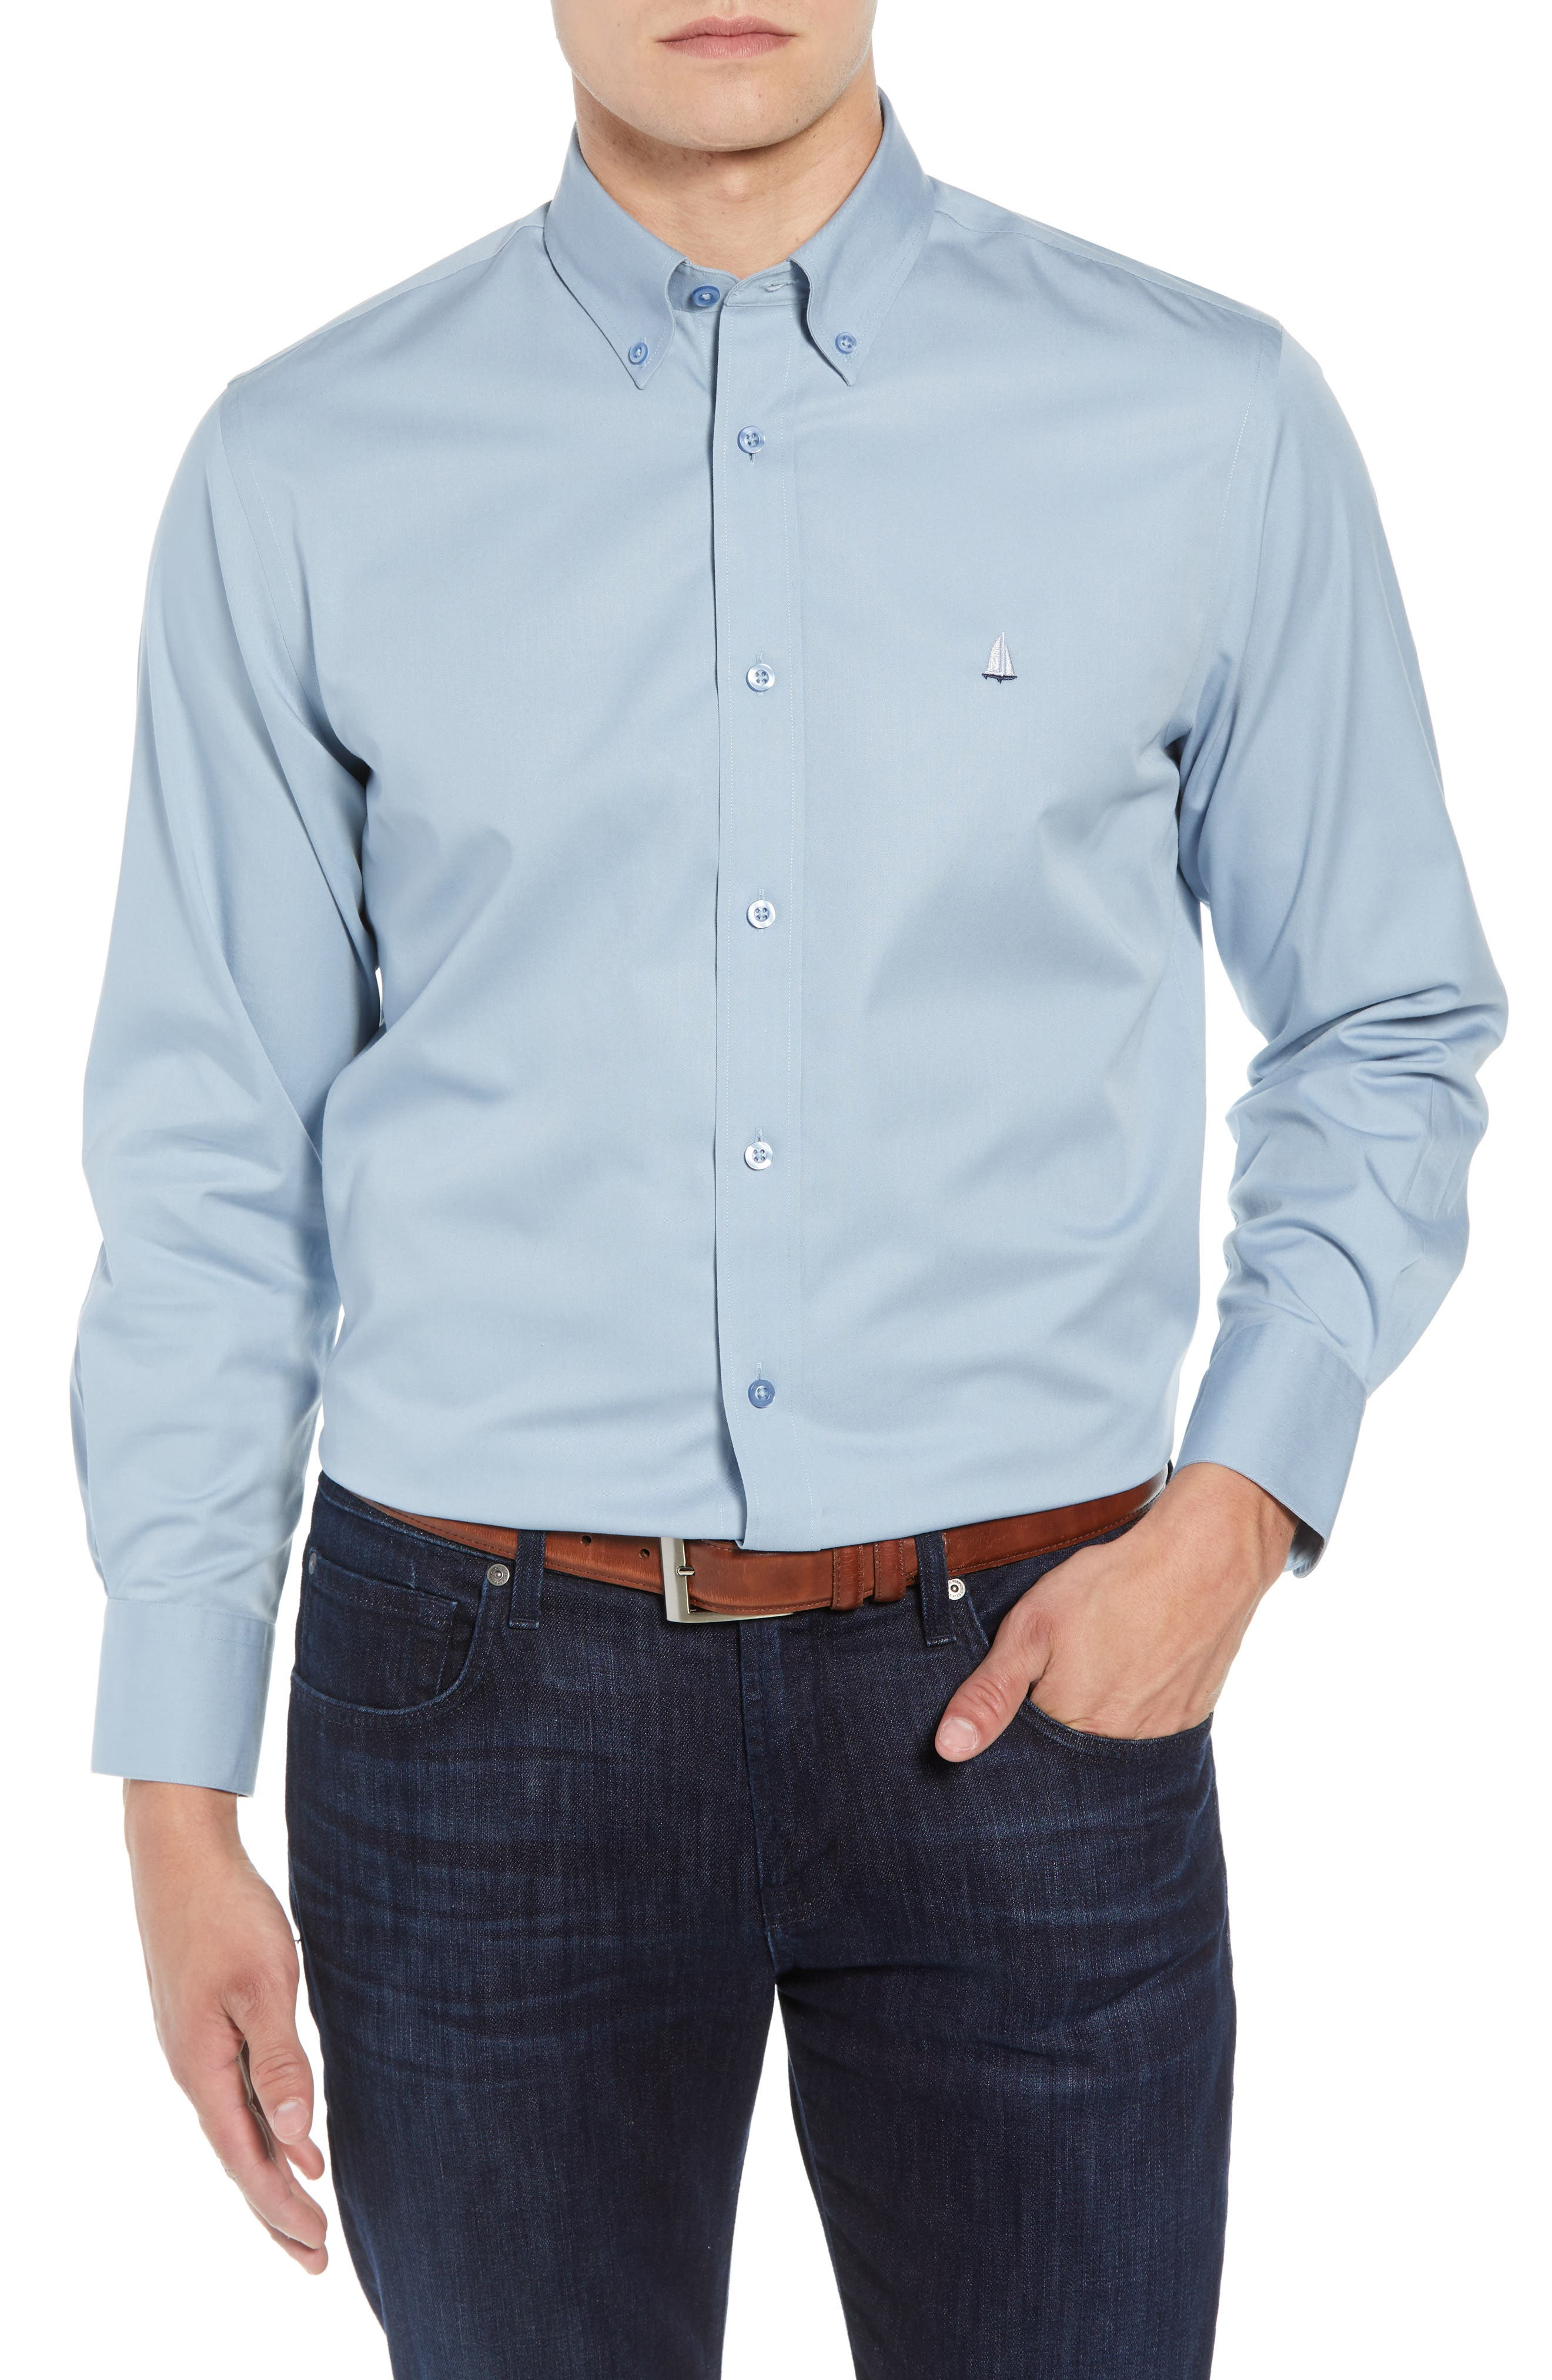 NORDSTROM MEN'S SHOP Smartcare<sup>™</sup> Traditional Fit Twill Boat Shirt, Main, color, BLUE DRIZZLE